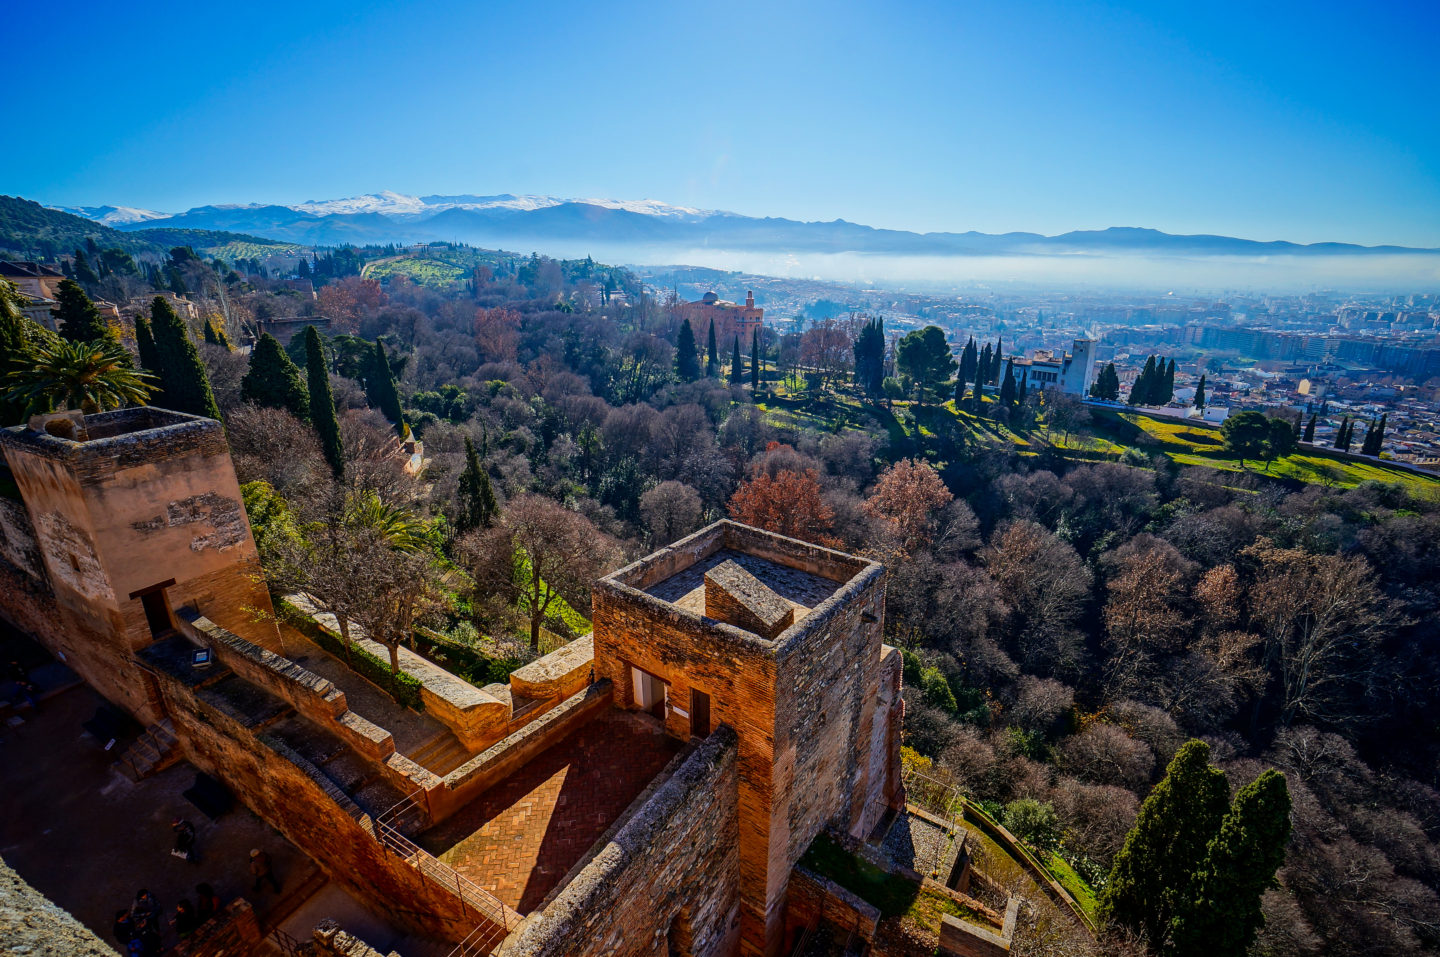 Alhambra: Day visit to the famous palace in Spain